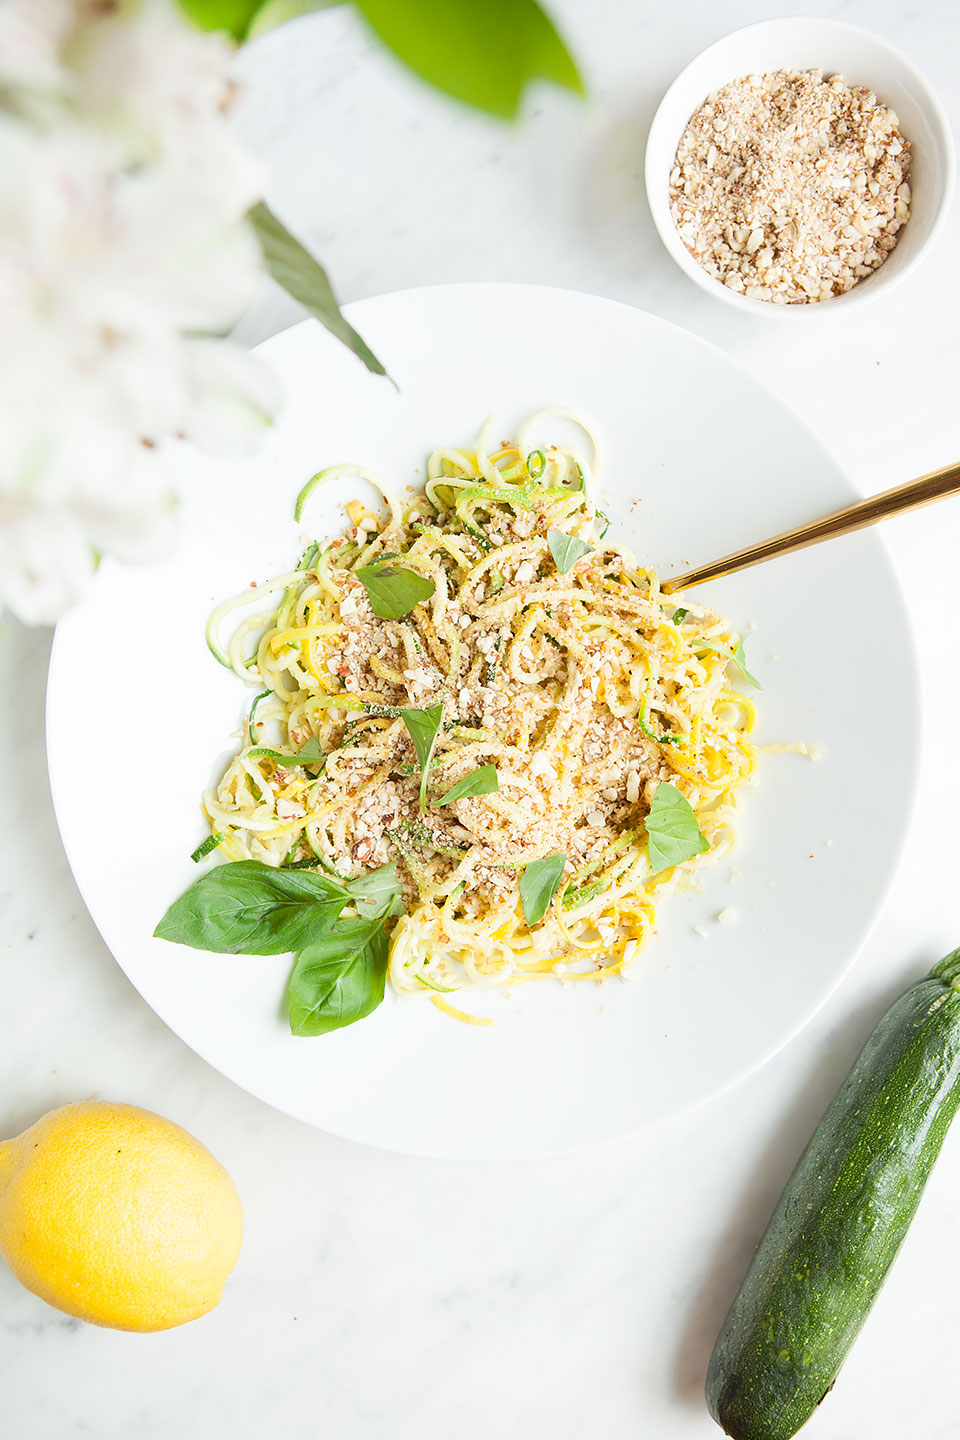 Lemony Spiralized Zucchini Salad with Almond Oat Topping | Vegan and gluten-free. | Loveleaf Co.